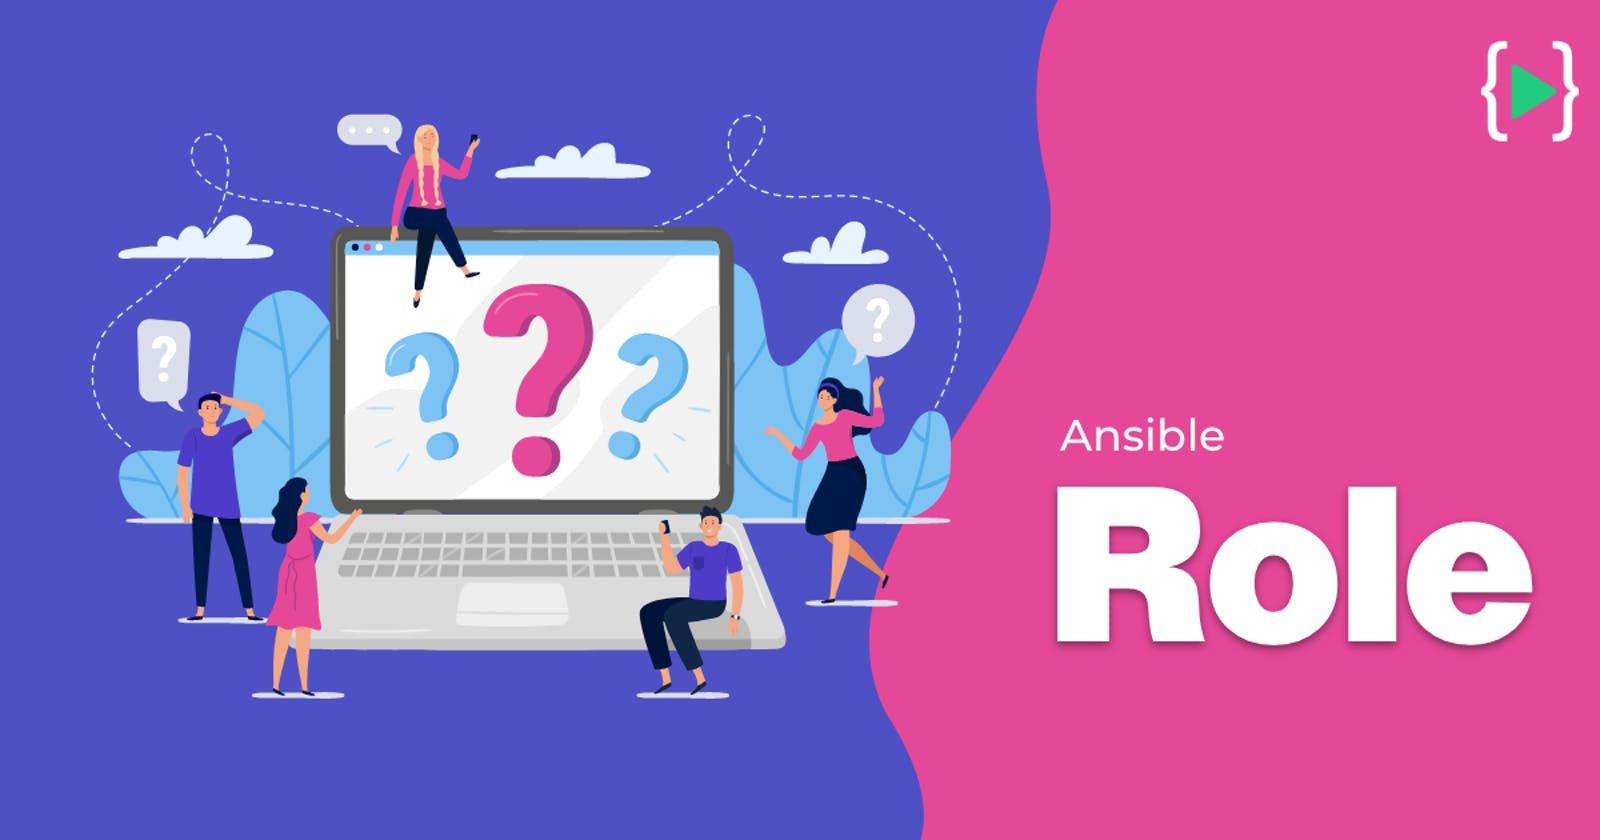 Ansible Roles Simplified